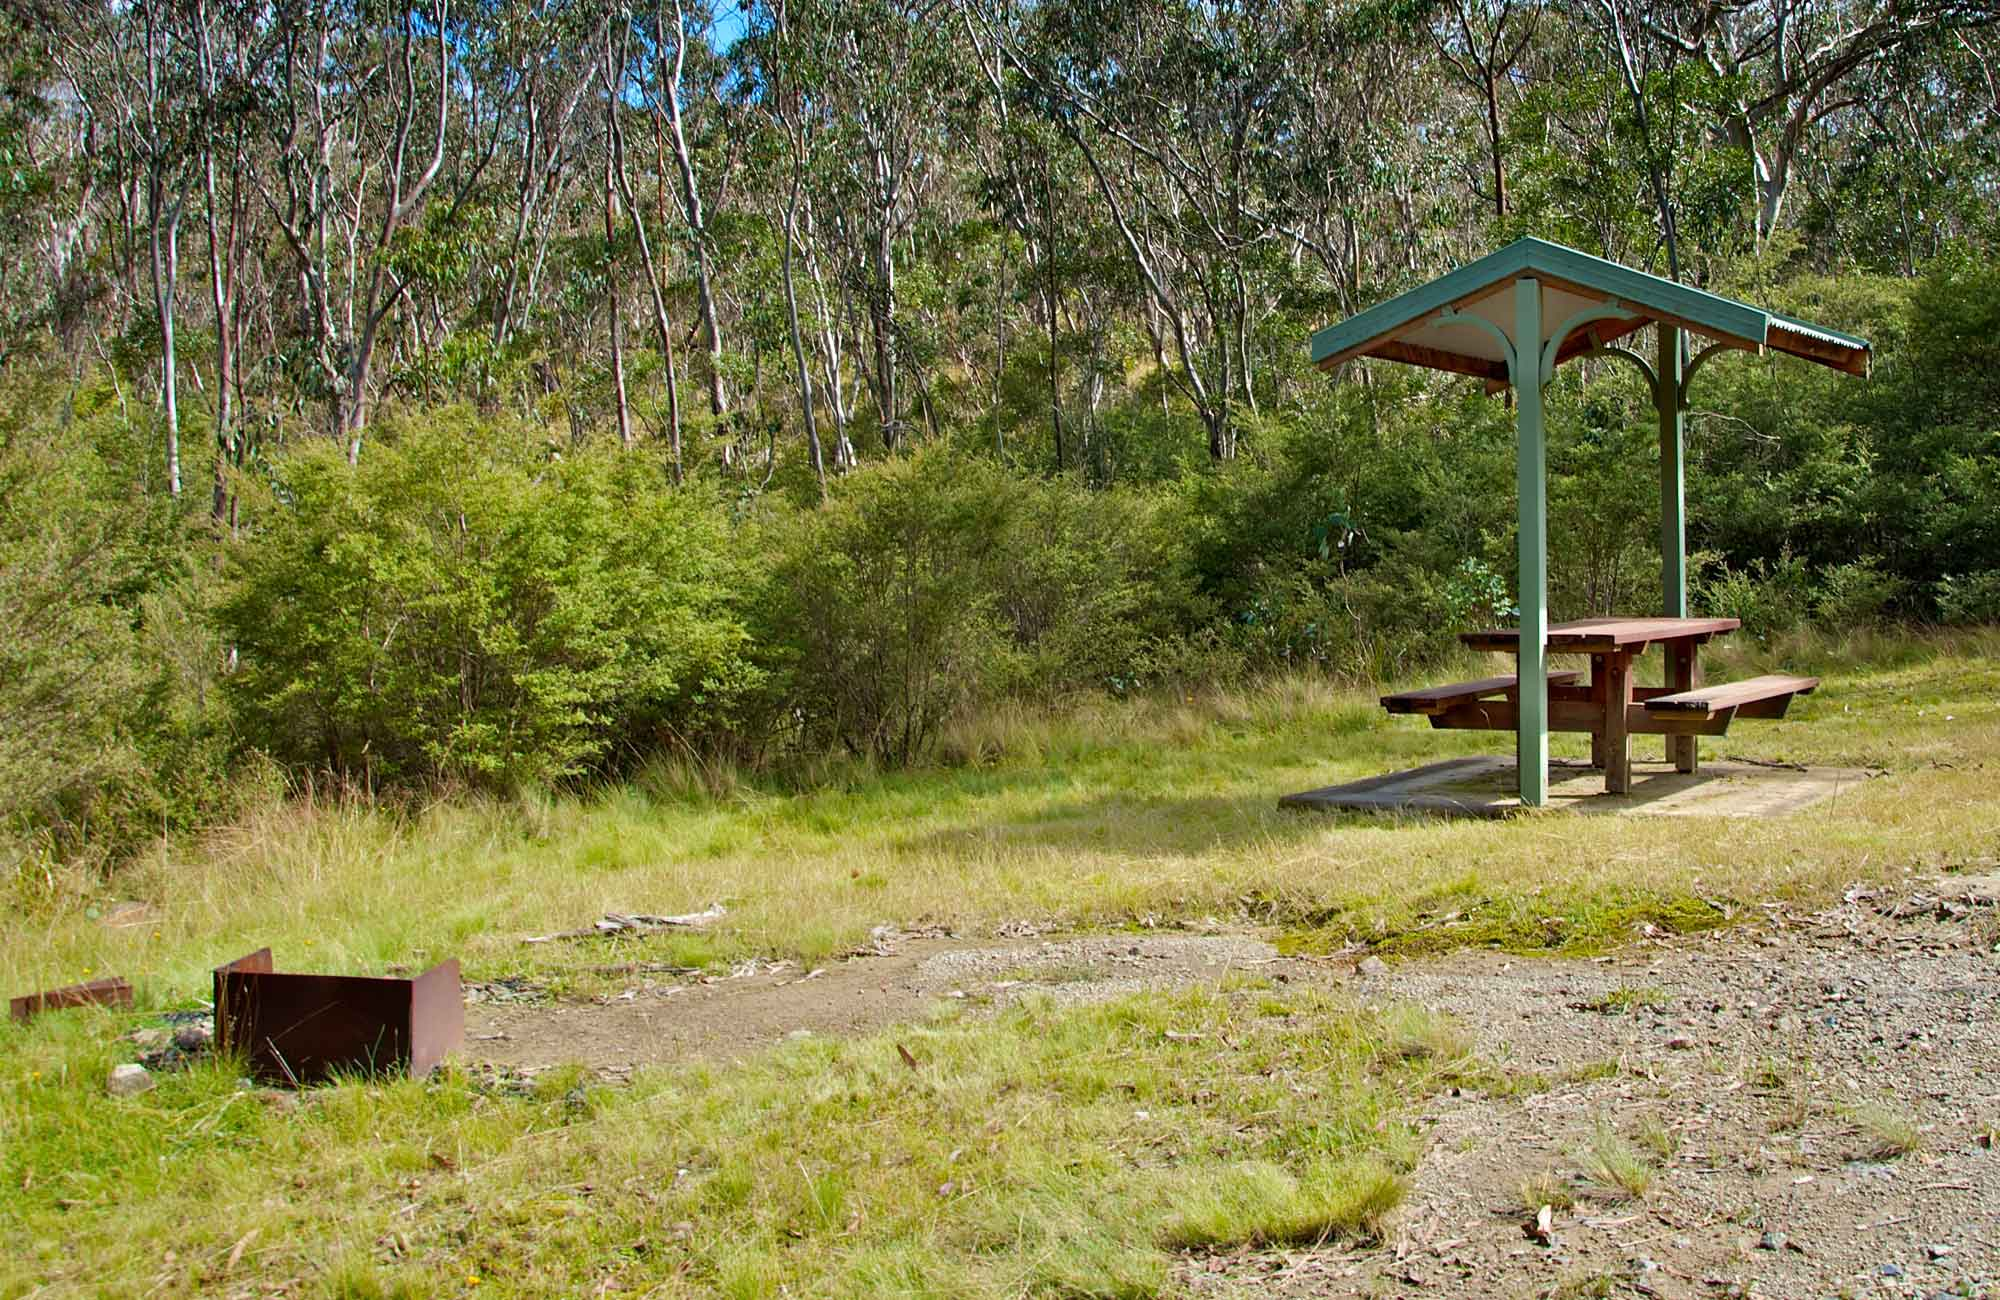 Picnic shelter and fire BBQ at the picnic area. Photo: John Spencer